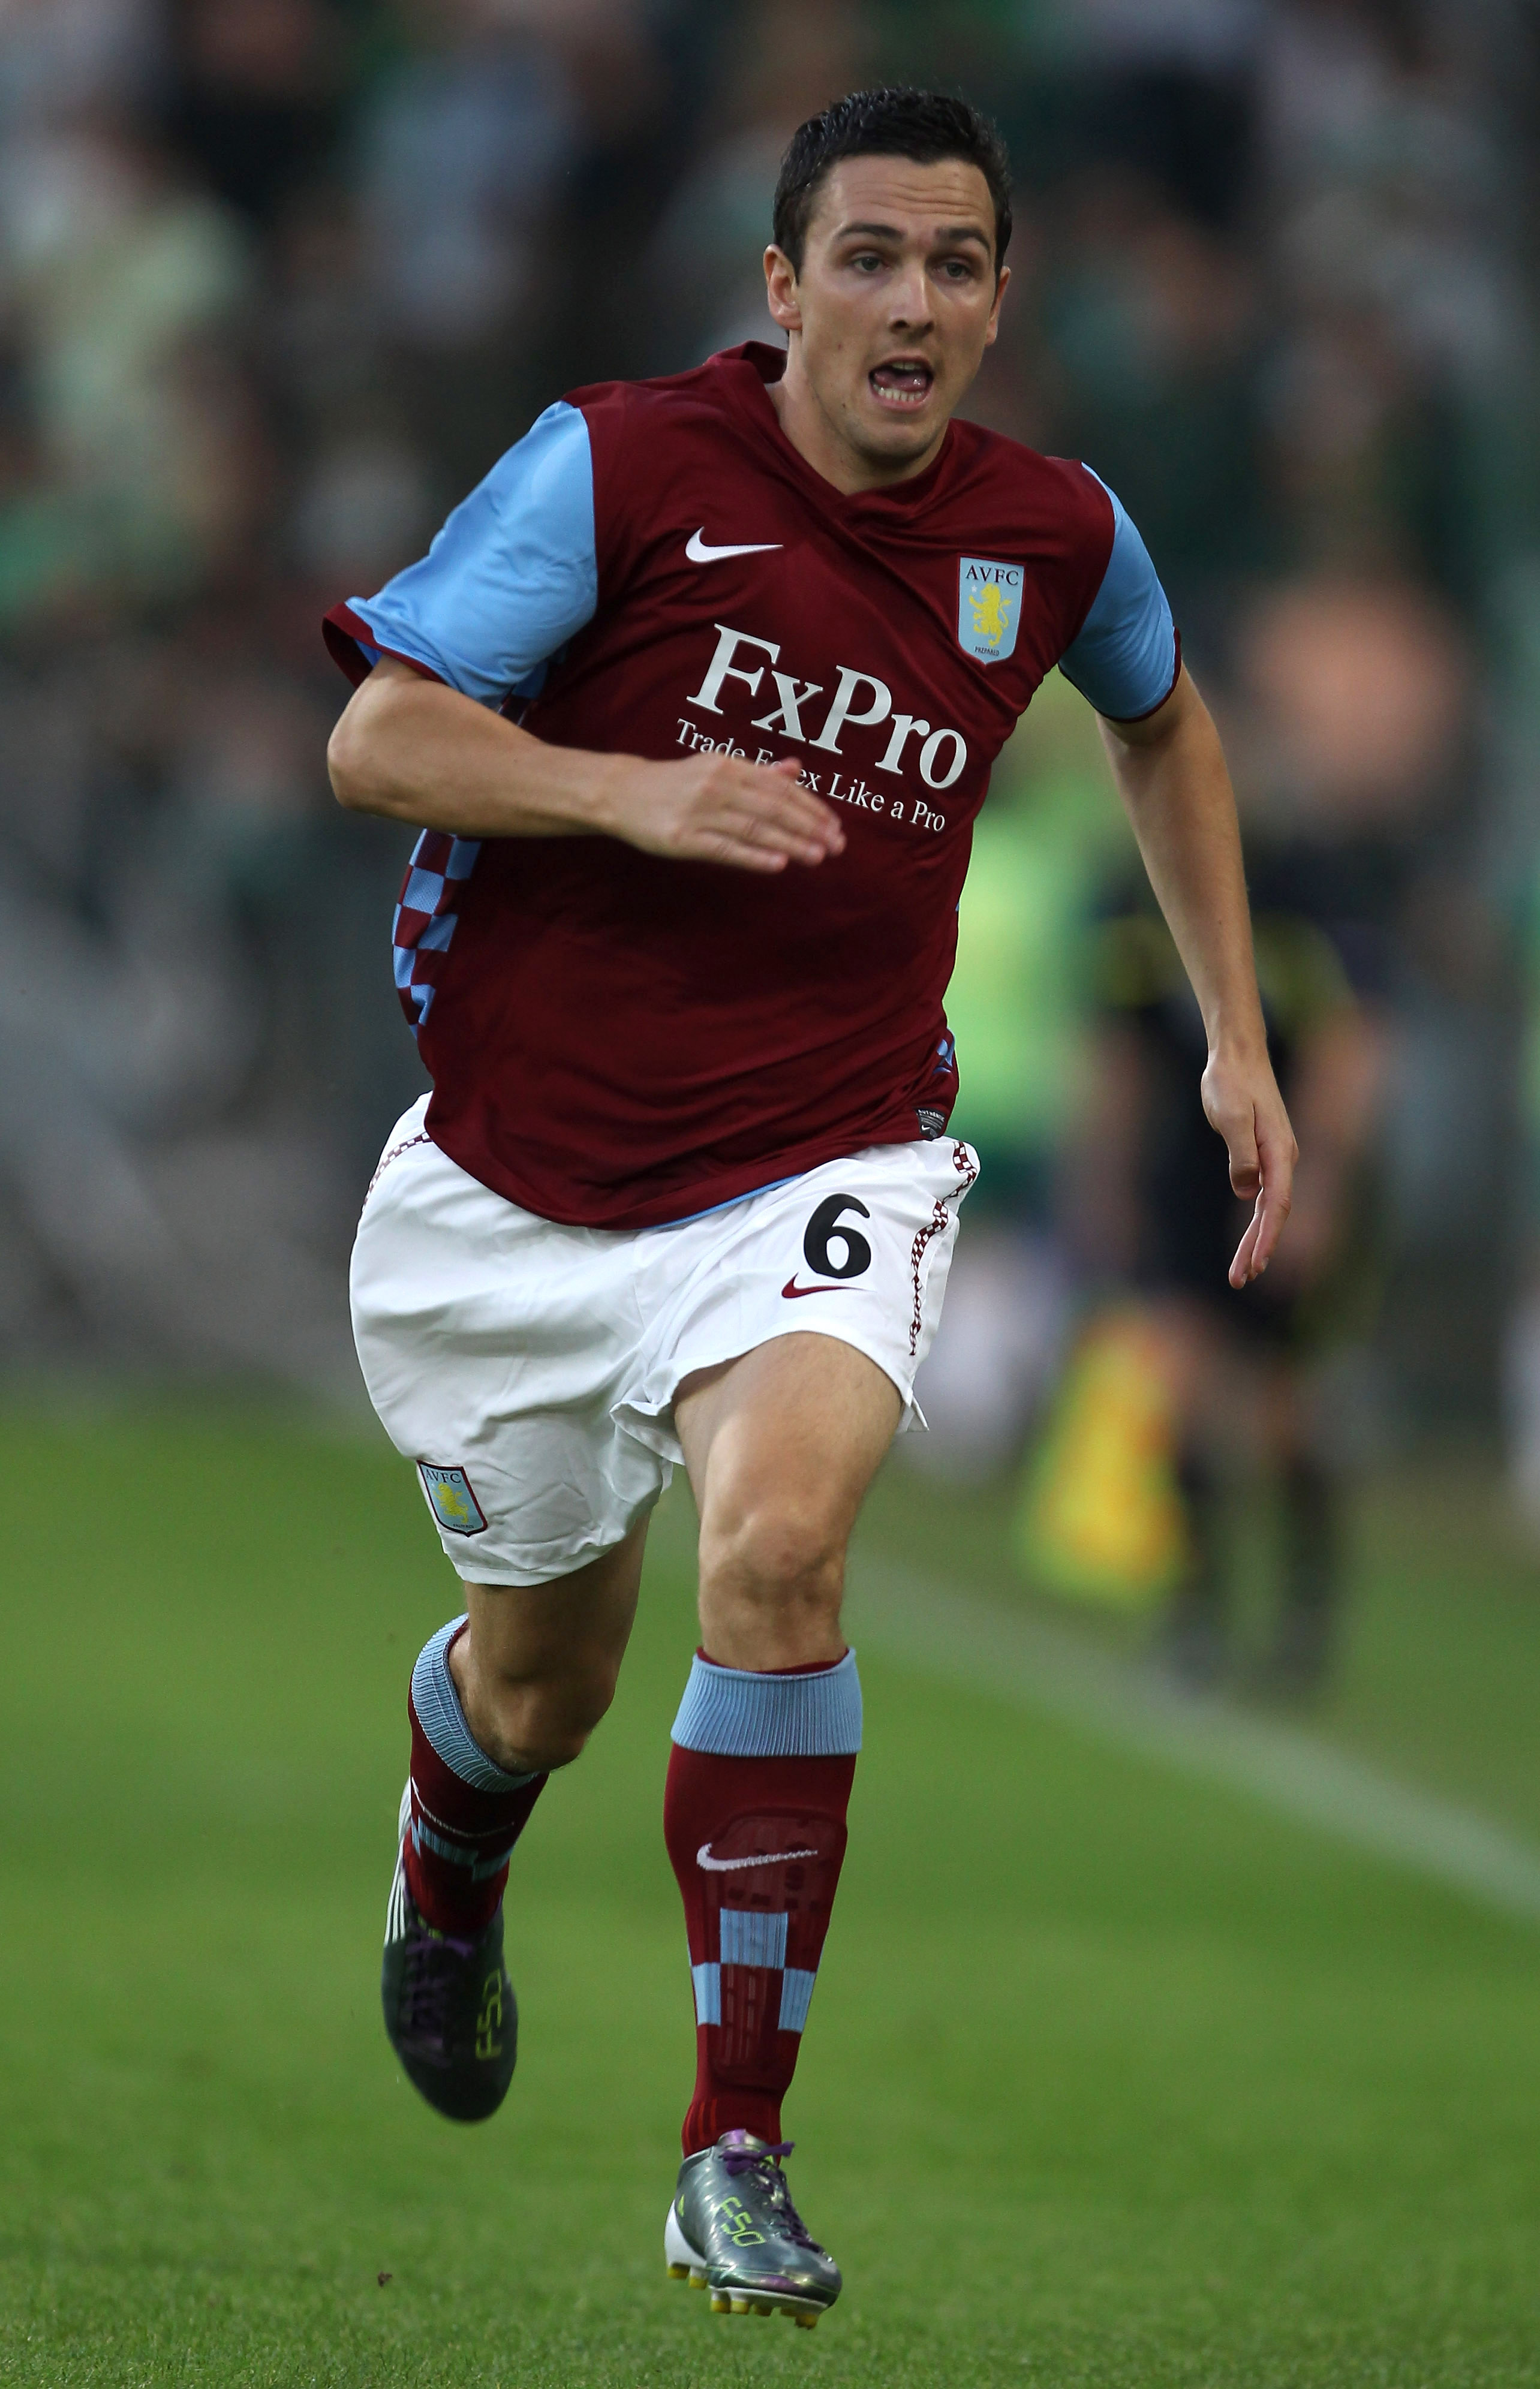 VIENNA, AUSTRIA - AUGUST 19:  Stewart Downing of Aston Villa in action during the UEFA Europa League, Play off, first leg Qualifying match between Rapid Vienna and Aston Villa at the Gerhard Hanappi Stadium on August 19, 2010 in Vienna, Austria.  (Photo b